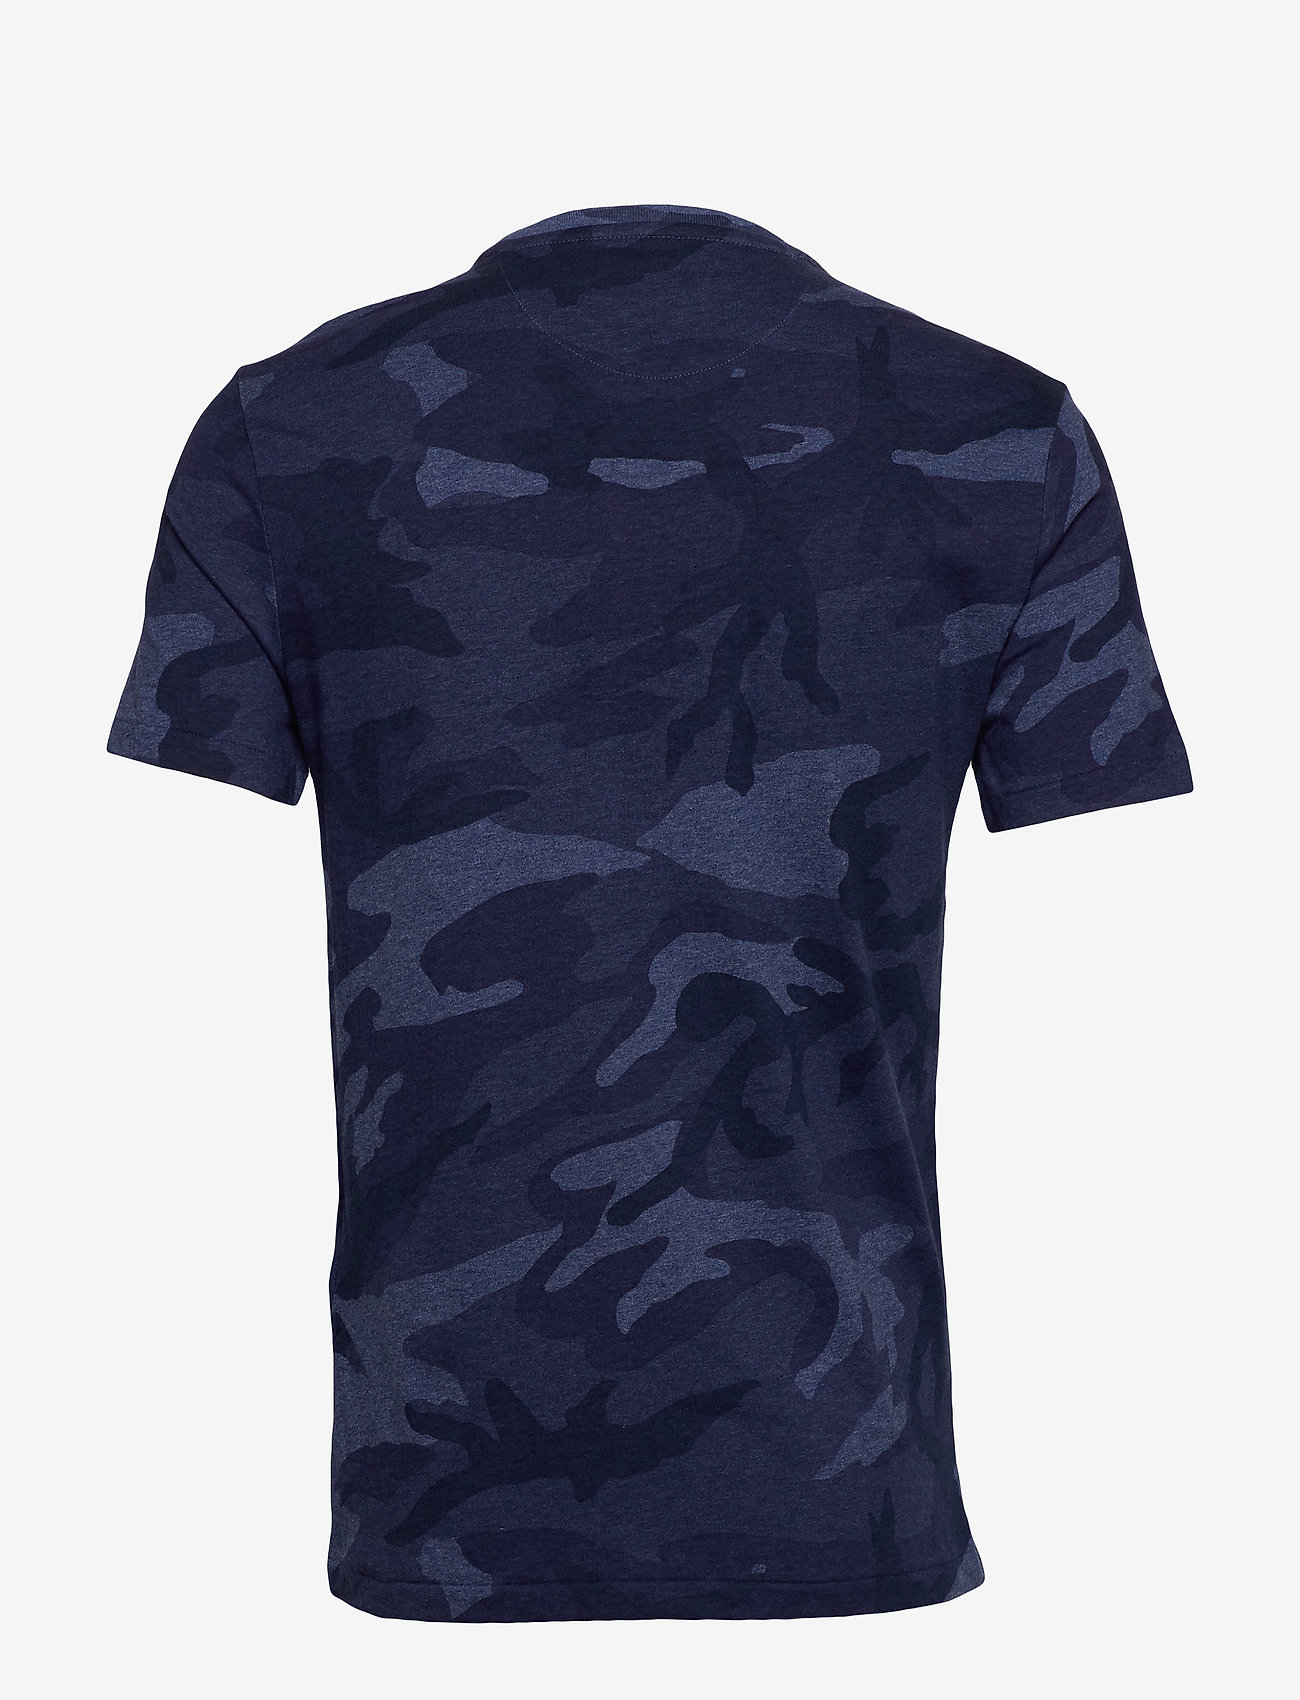 Custom Slim Fit Camo Tee (Rl Camo Blue Heat) (581.75 kr) - Polo Ralph Lauren